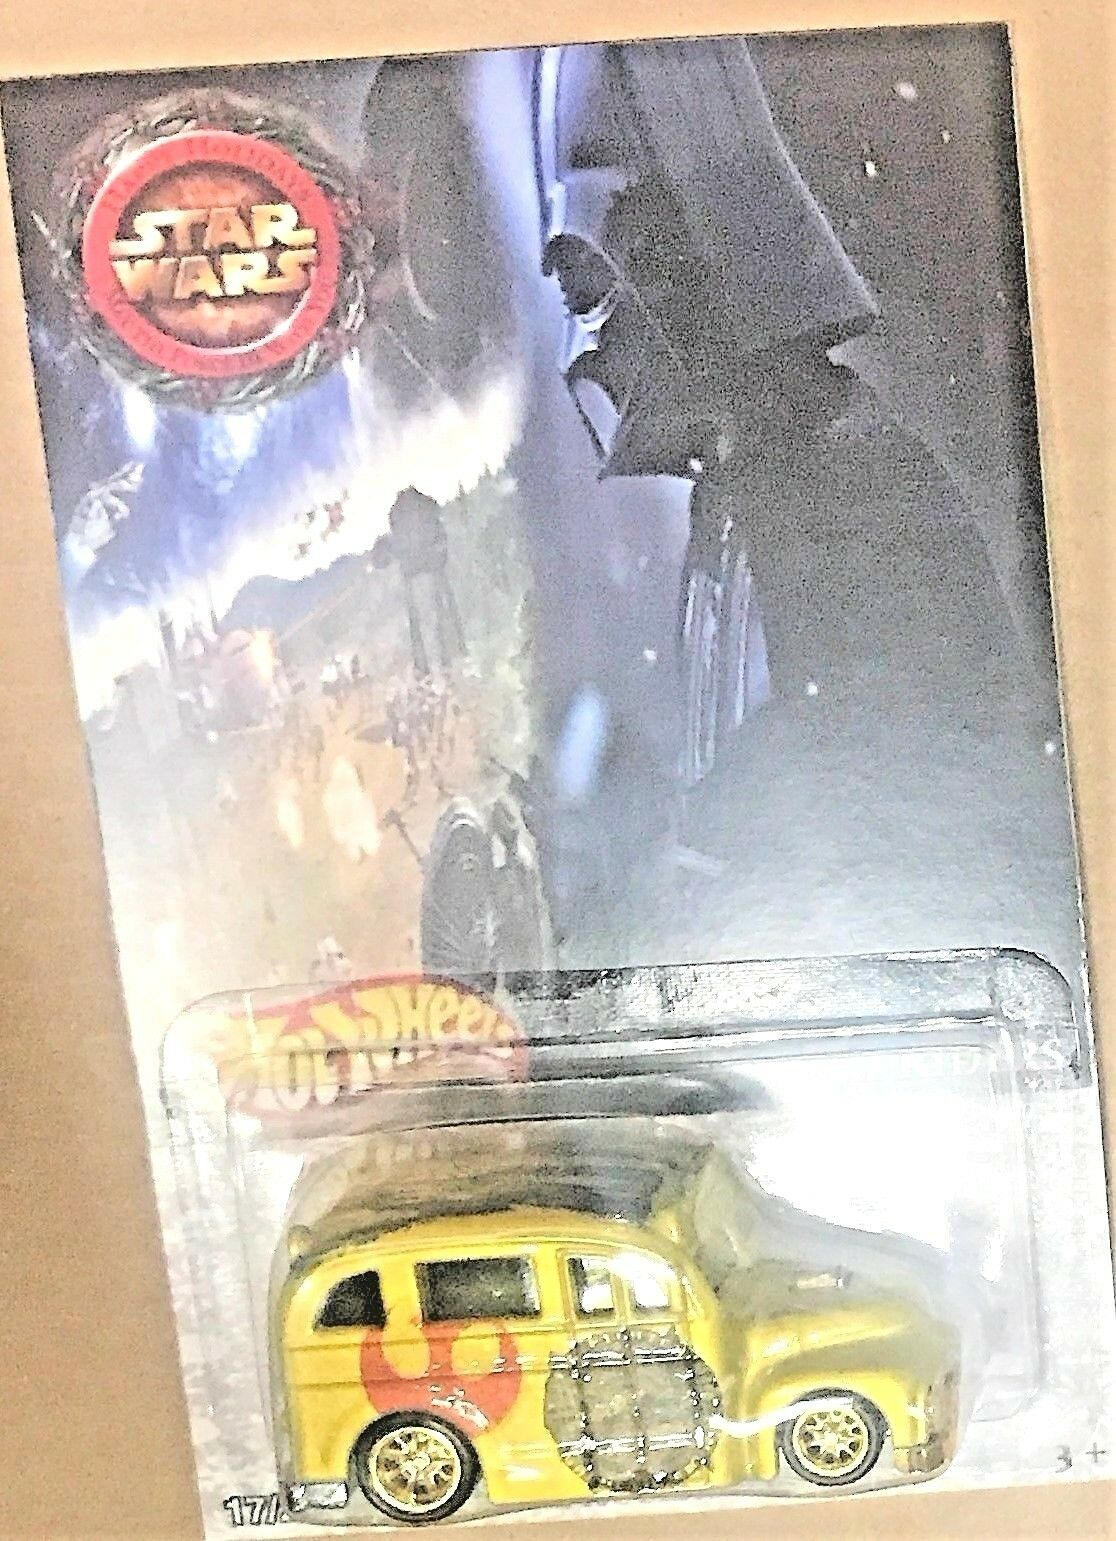 Hot Wheels Escuela Busted Star Wars Real Rider Edición Limitada Hot Wheels 1/25